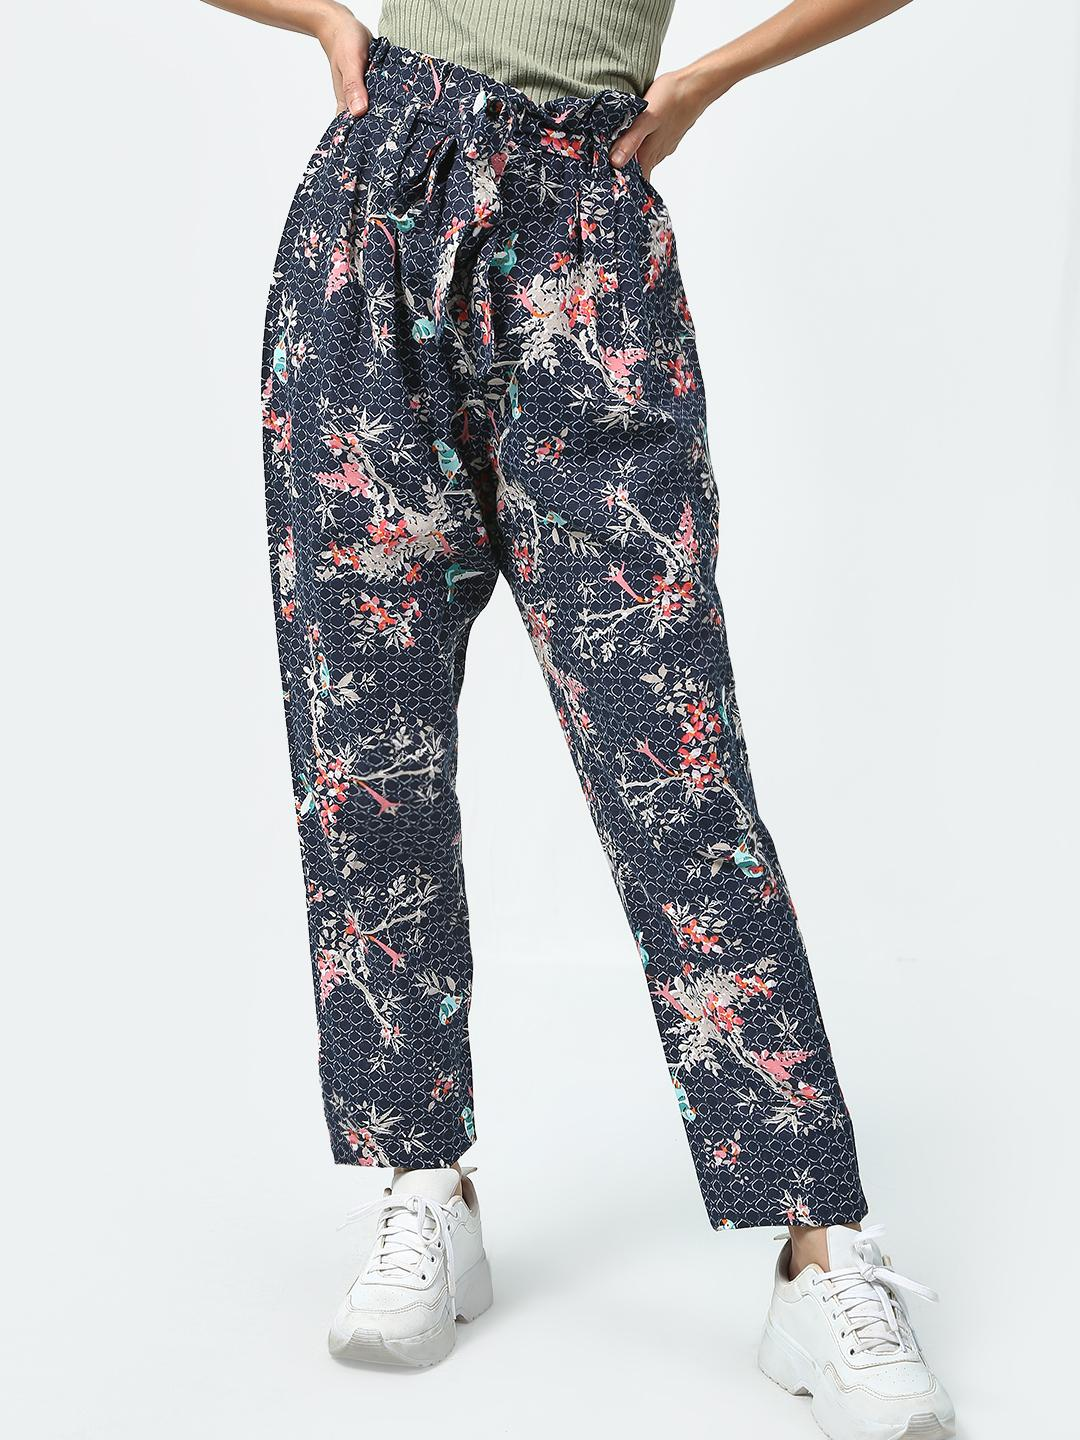 Oxolloxo Grey Floral Print High Waist Trousers 1